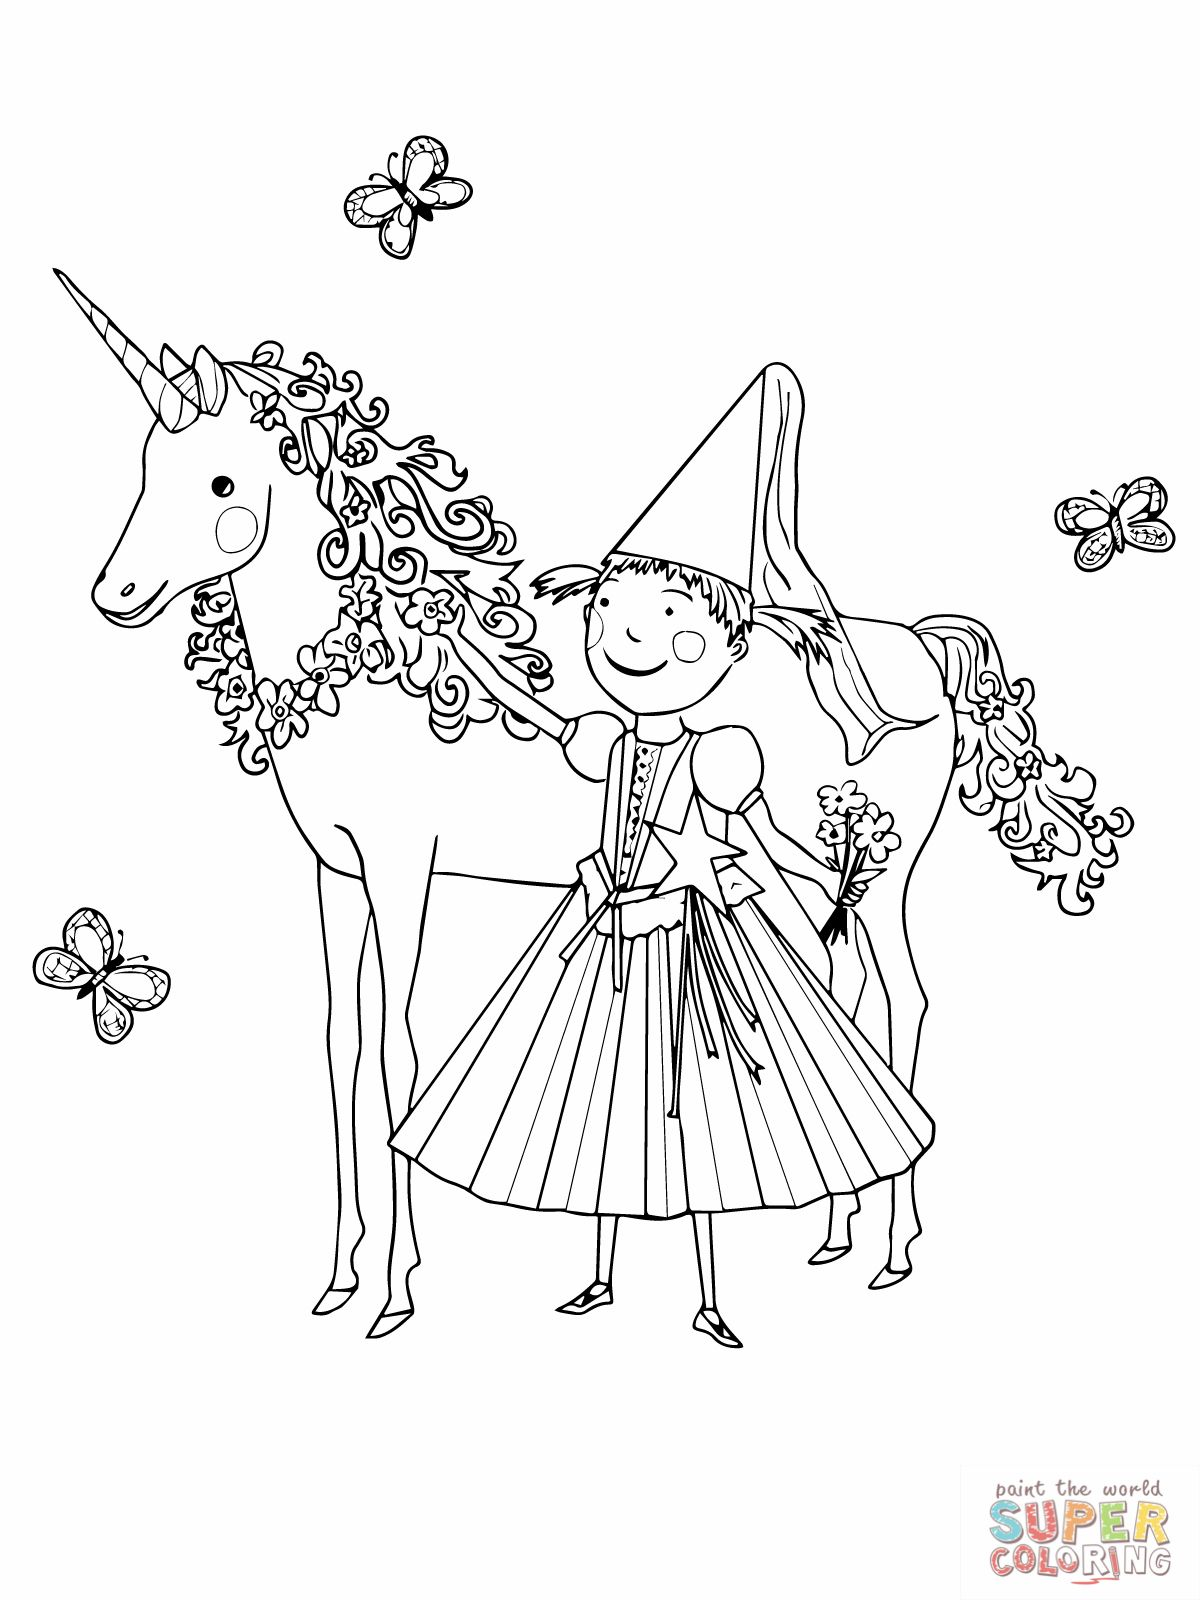 pinkalicious coloring pages # 2